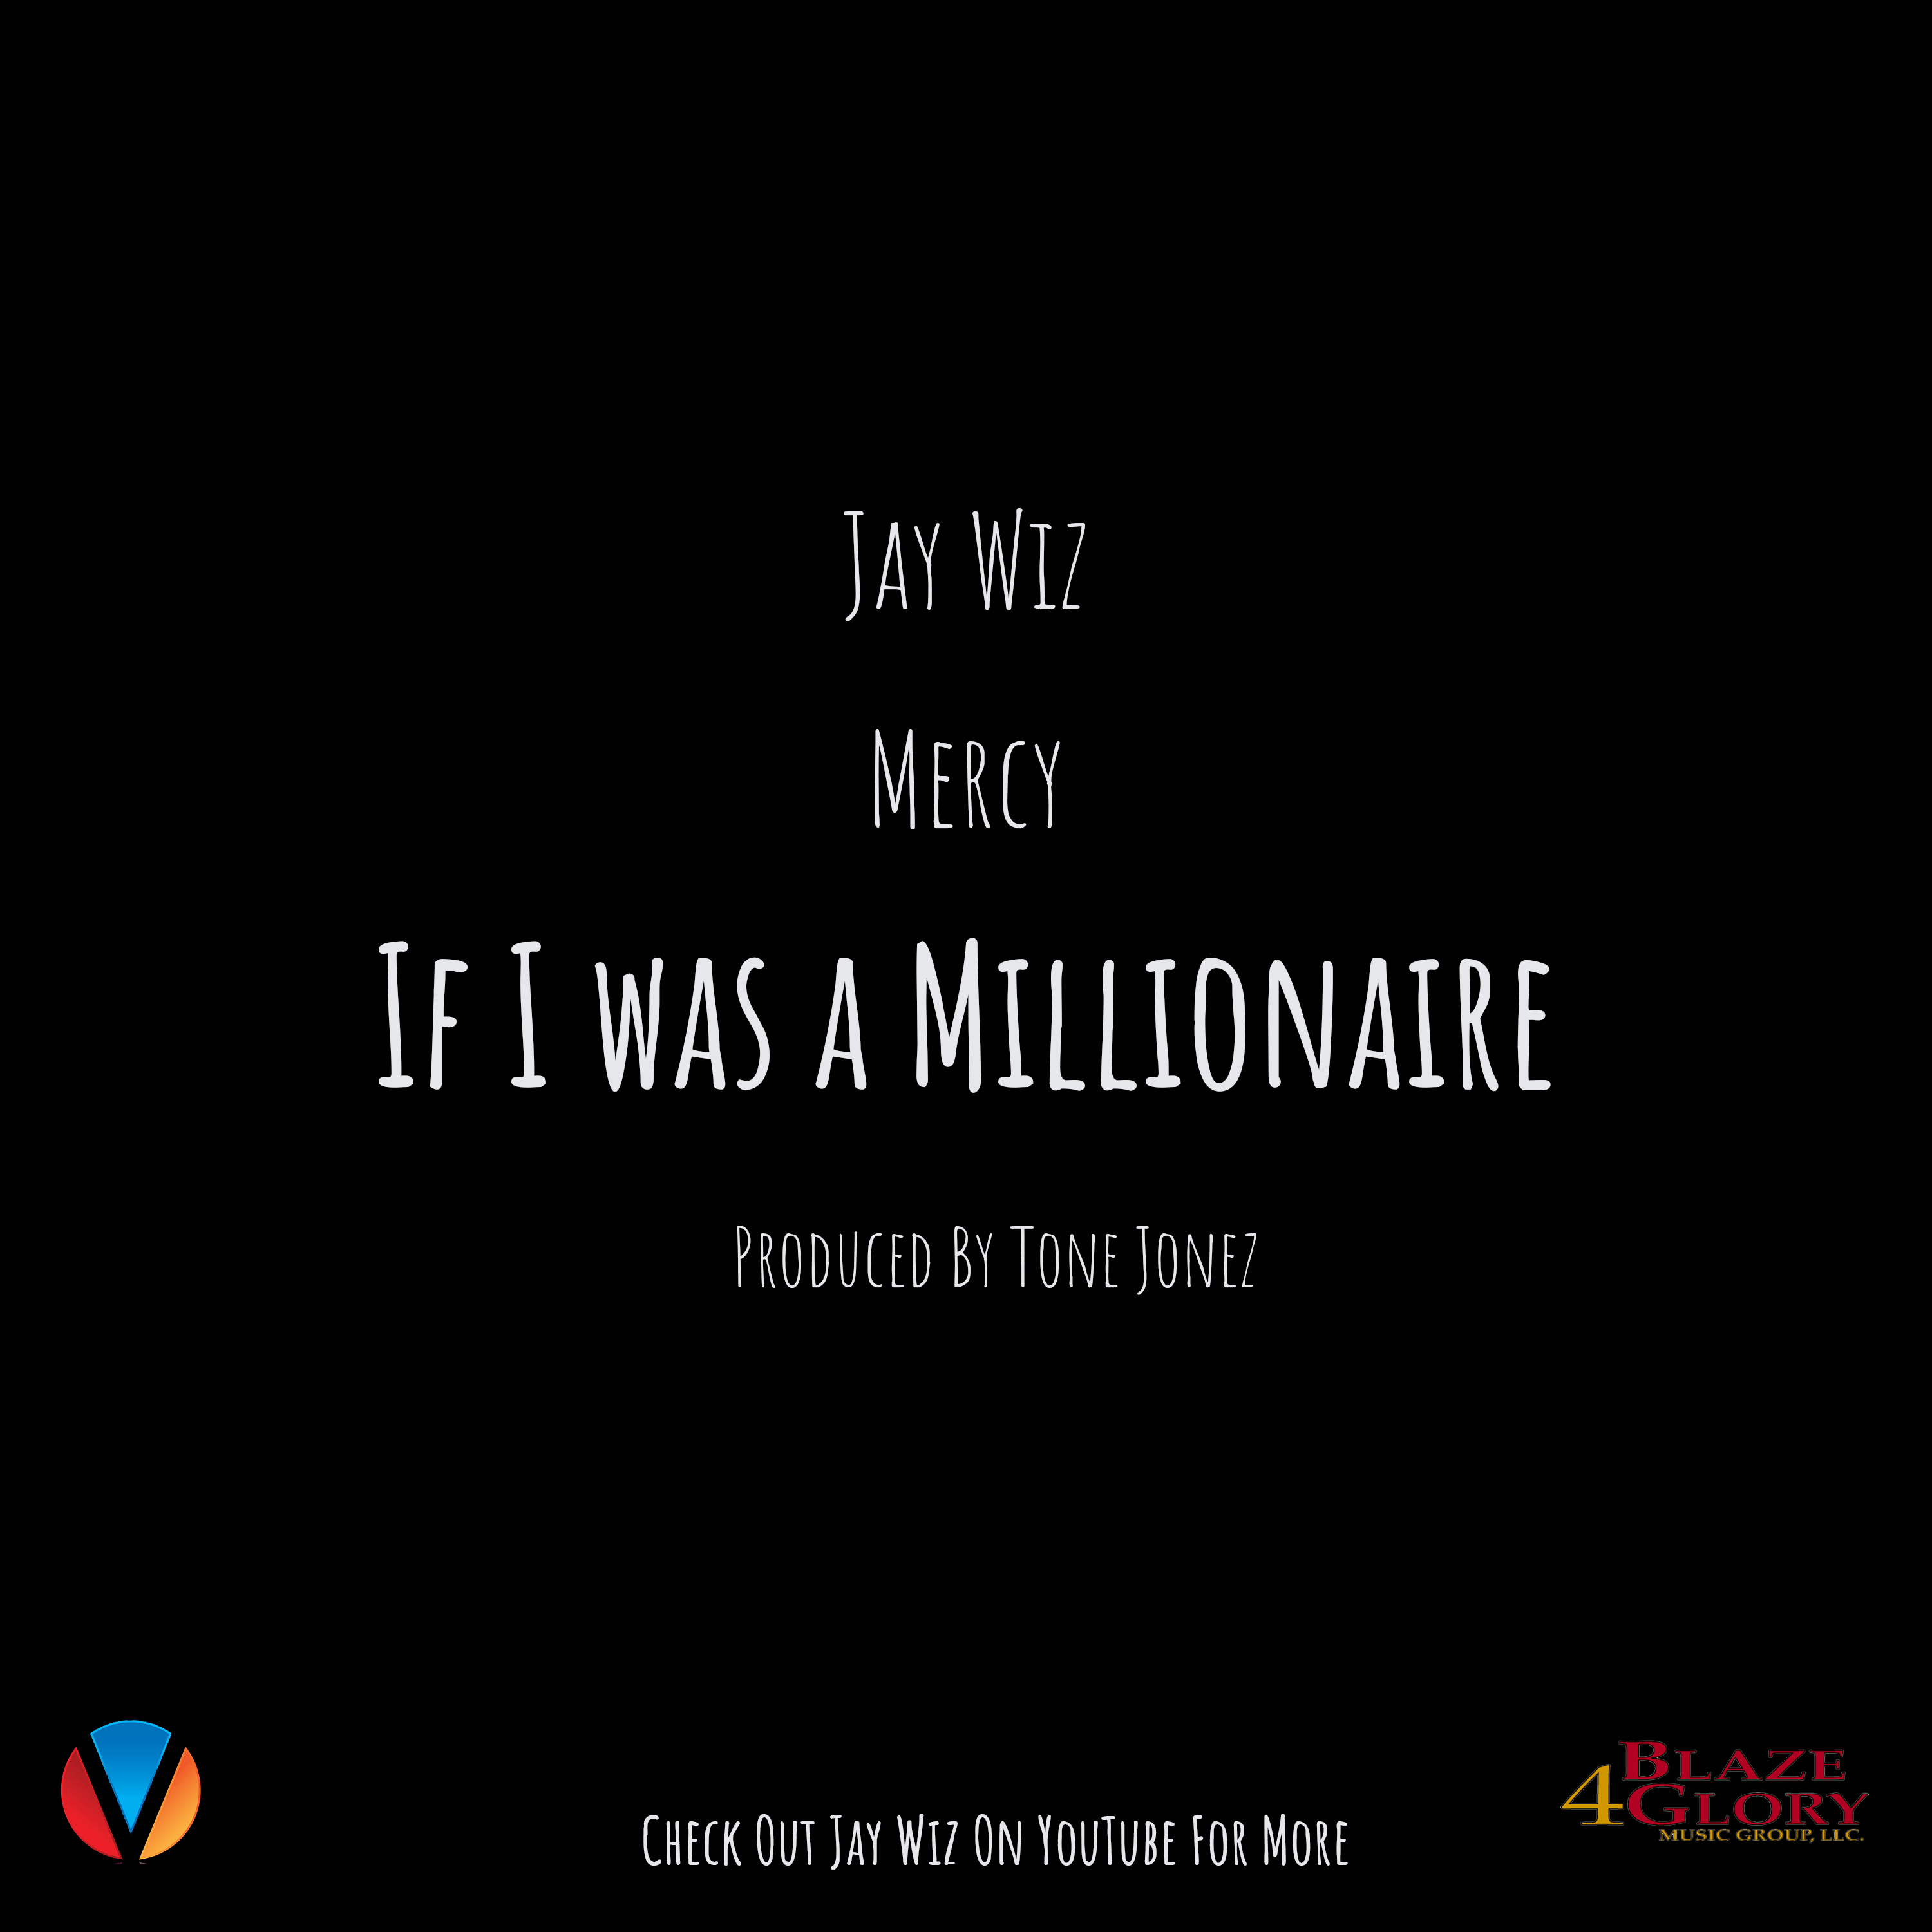 Jay Wiz featuring Mercy - If I Was a Millionaire